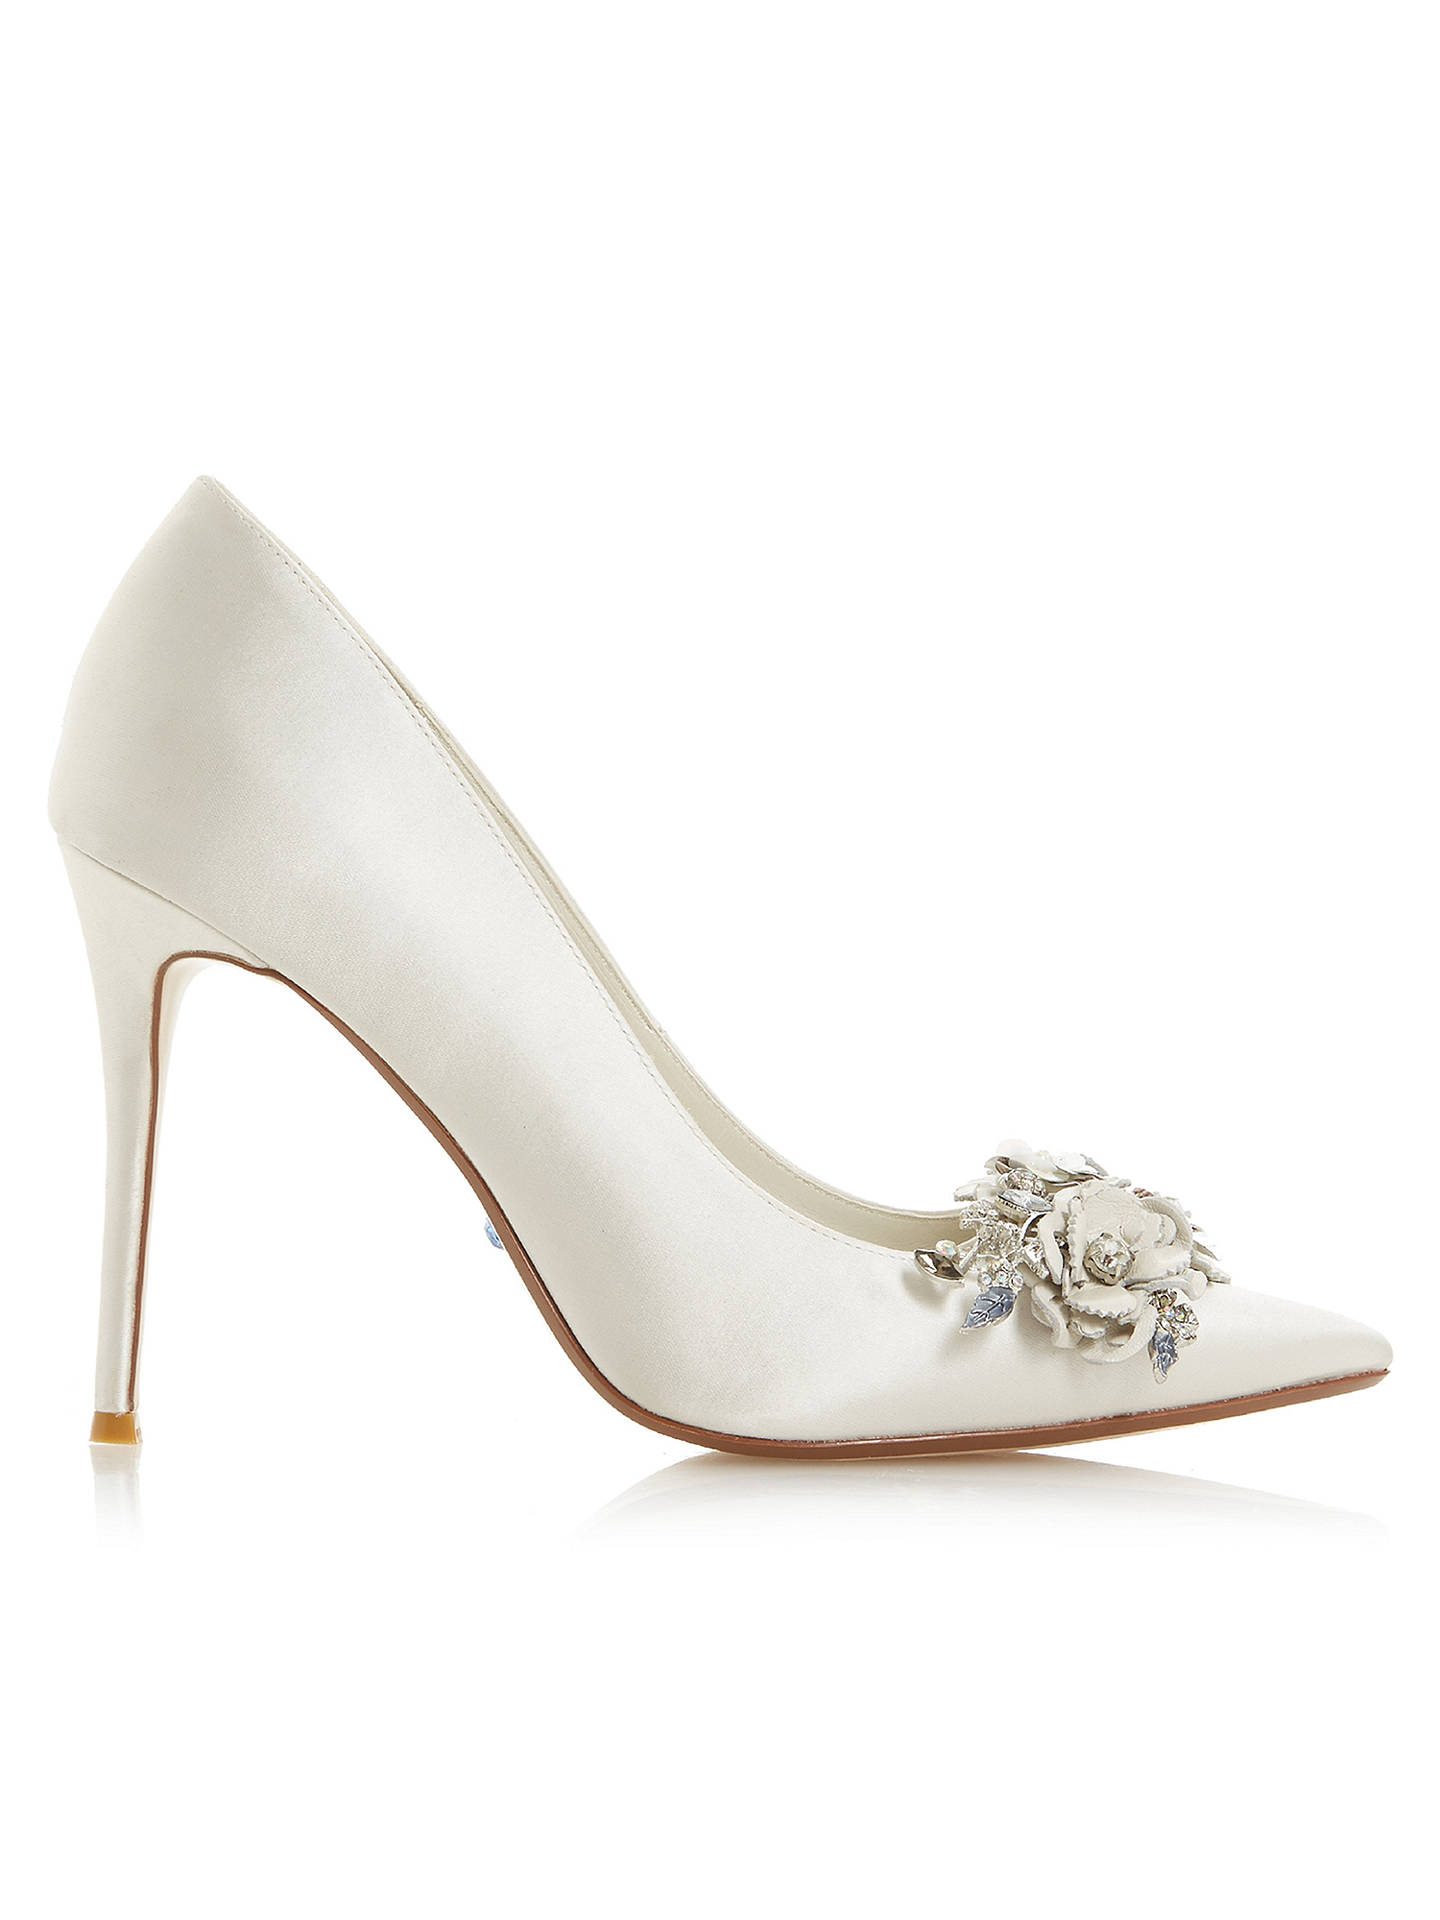 7356aa60e3f4 Buy Dune Bridal Collection Brydee Flower Garden Court Shoes